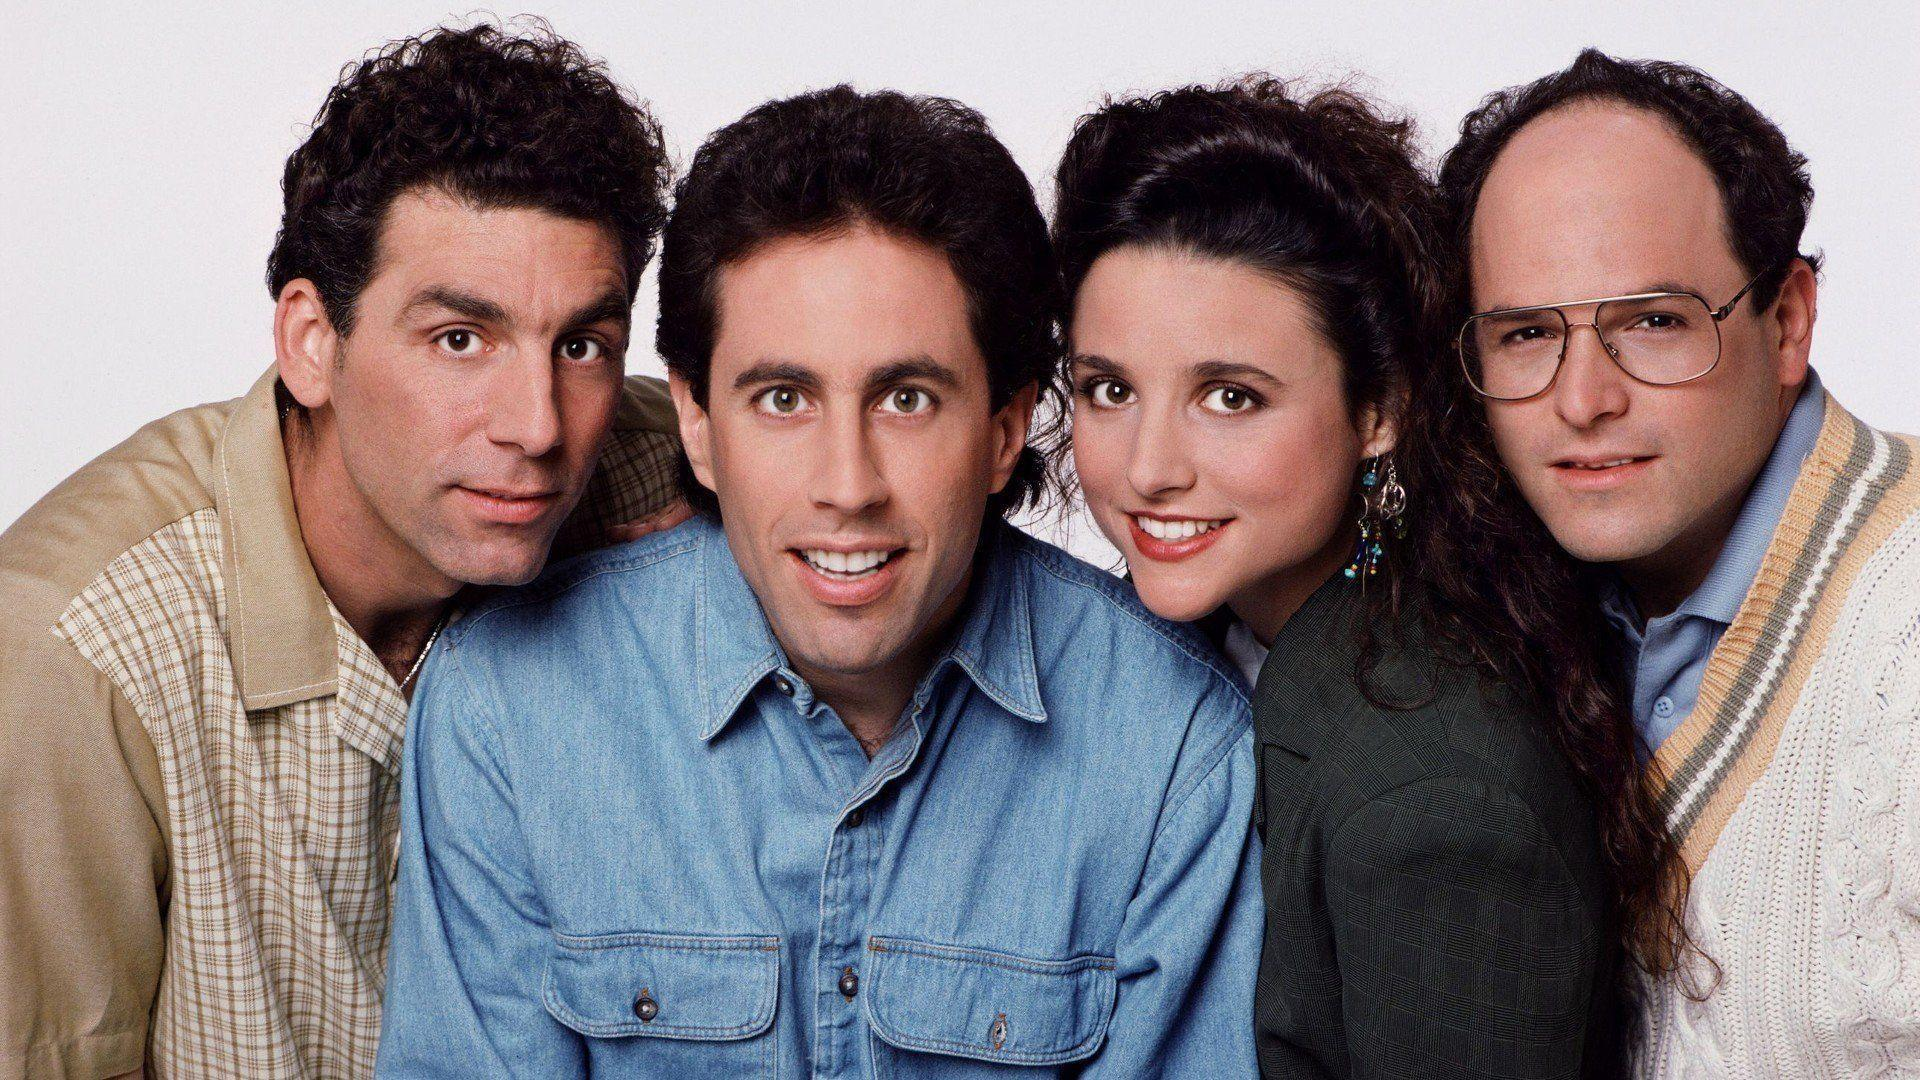 9 Seinfeld HD Wallpapers